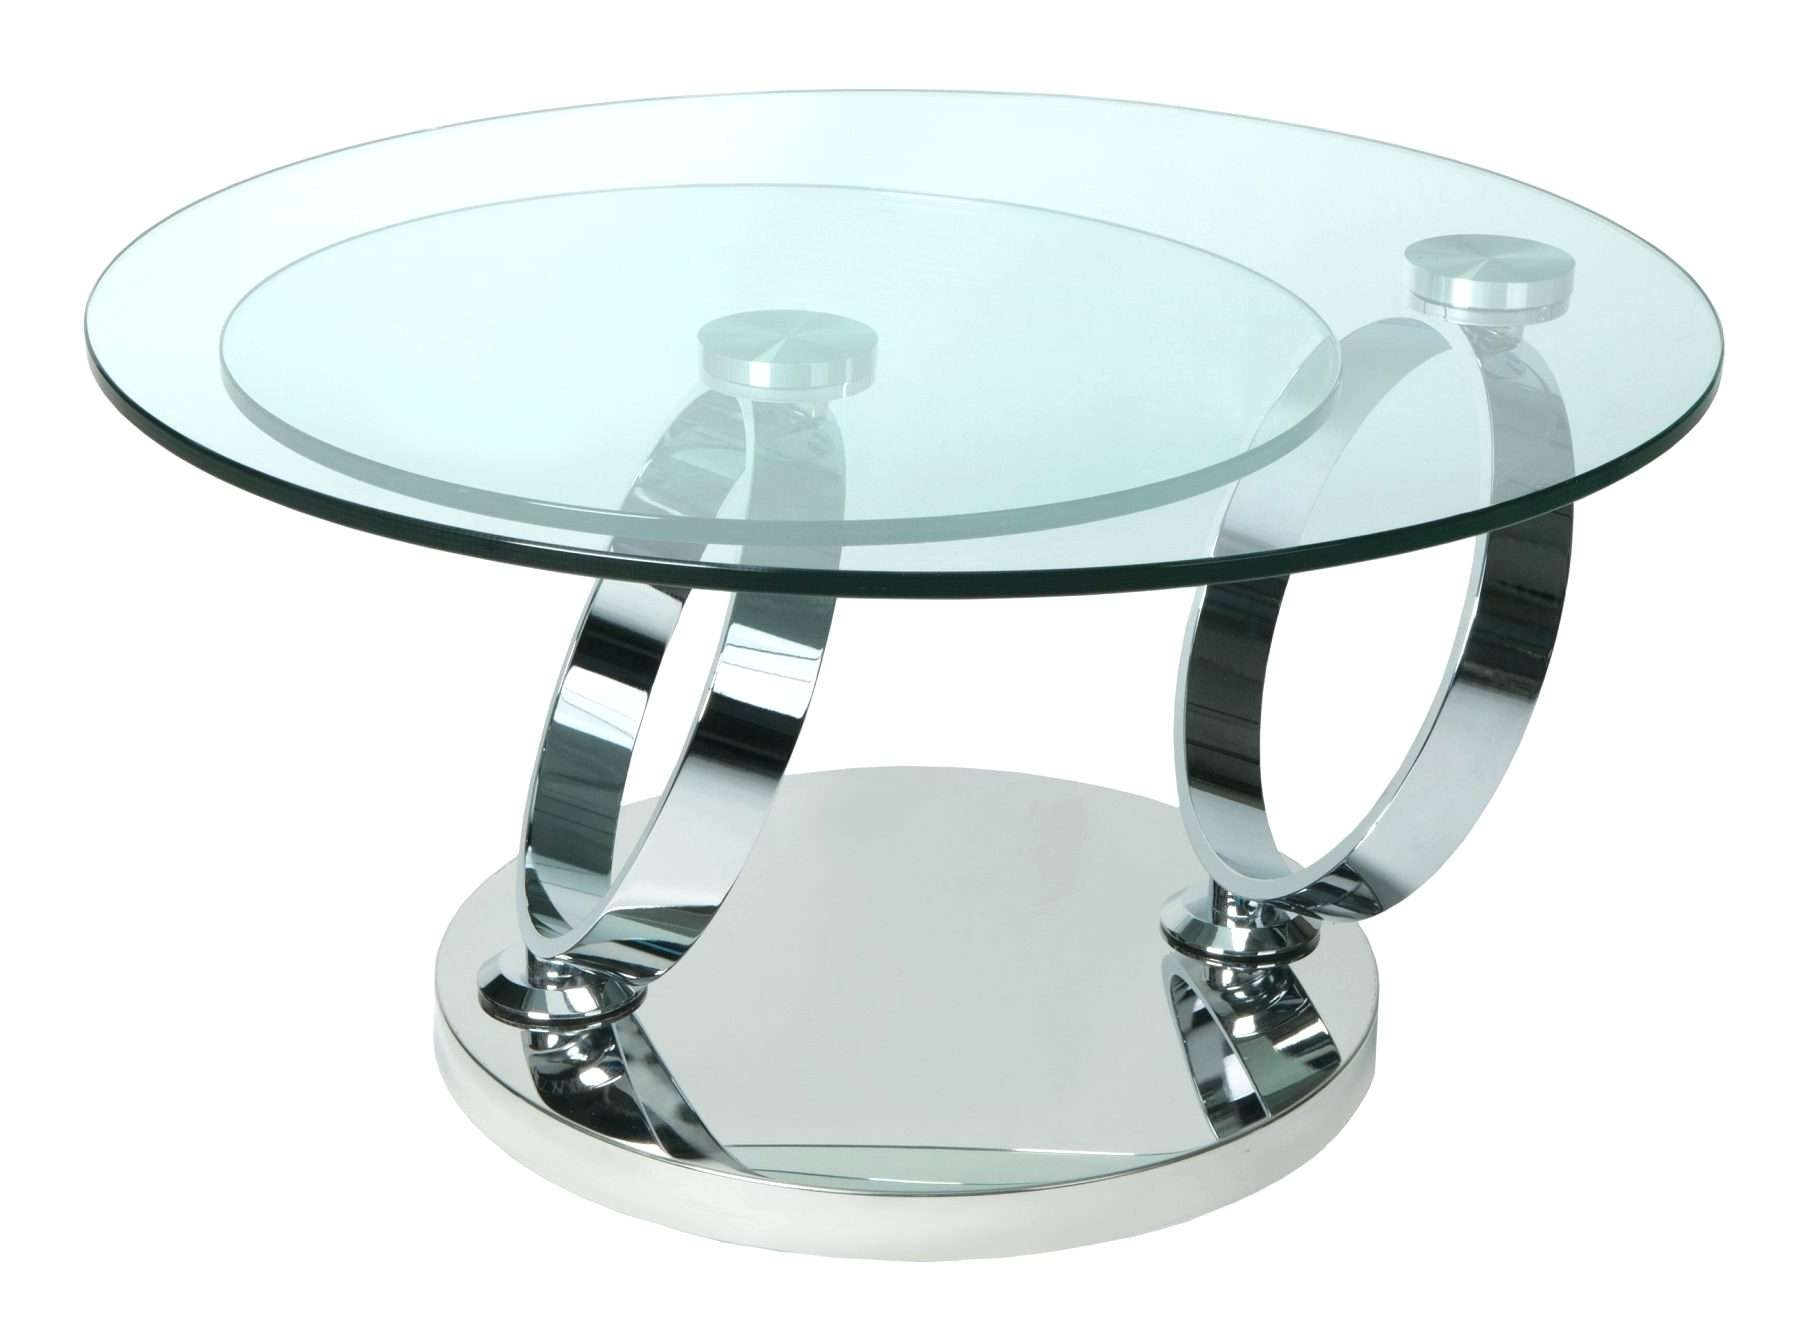 2018 Revolving Glass Coffee Tables Inside Revolving Glass Coffee Table – Coffee Tables (View 3 of 20)